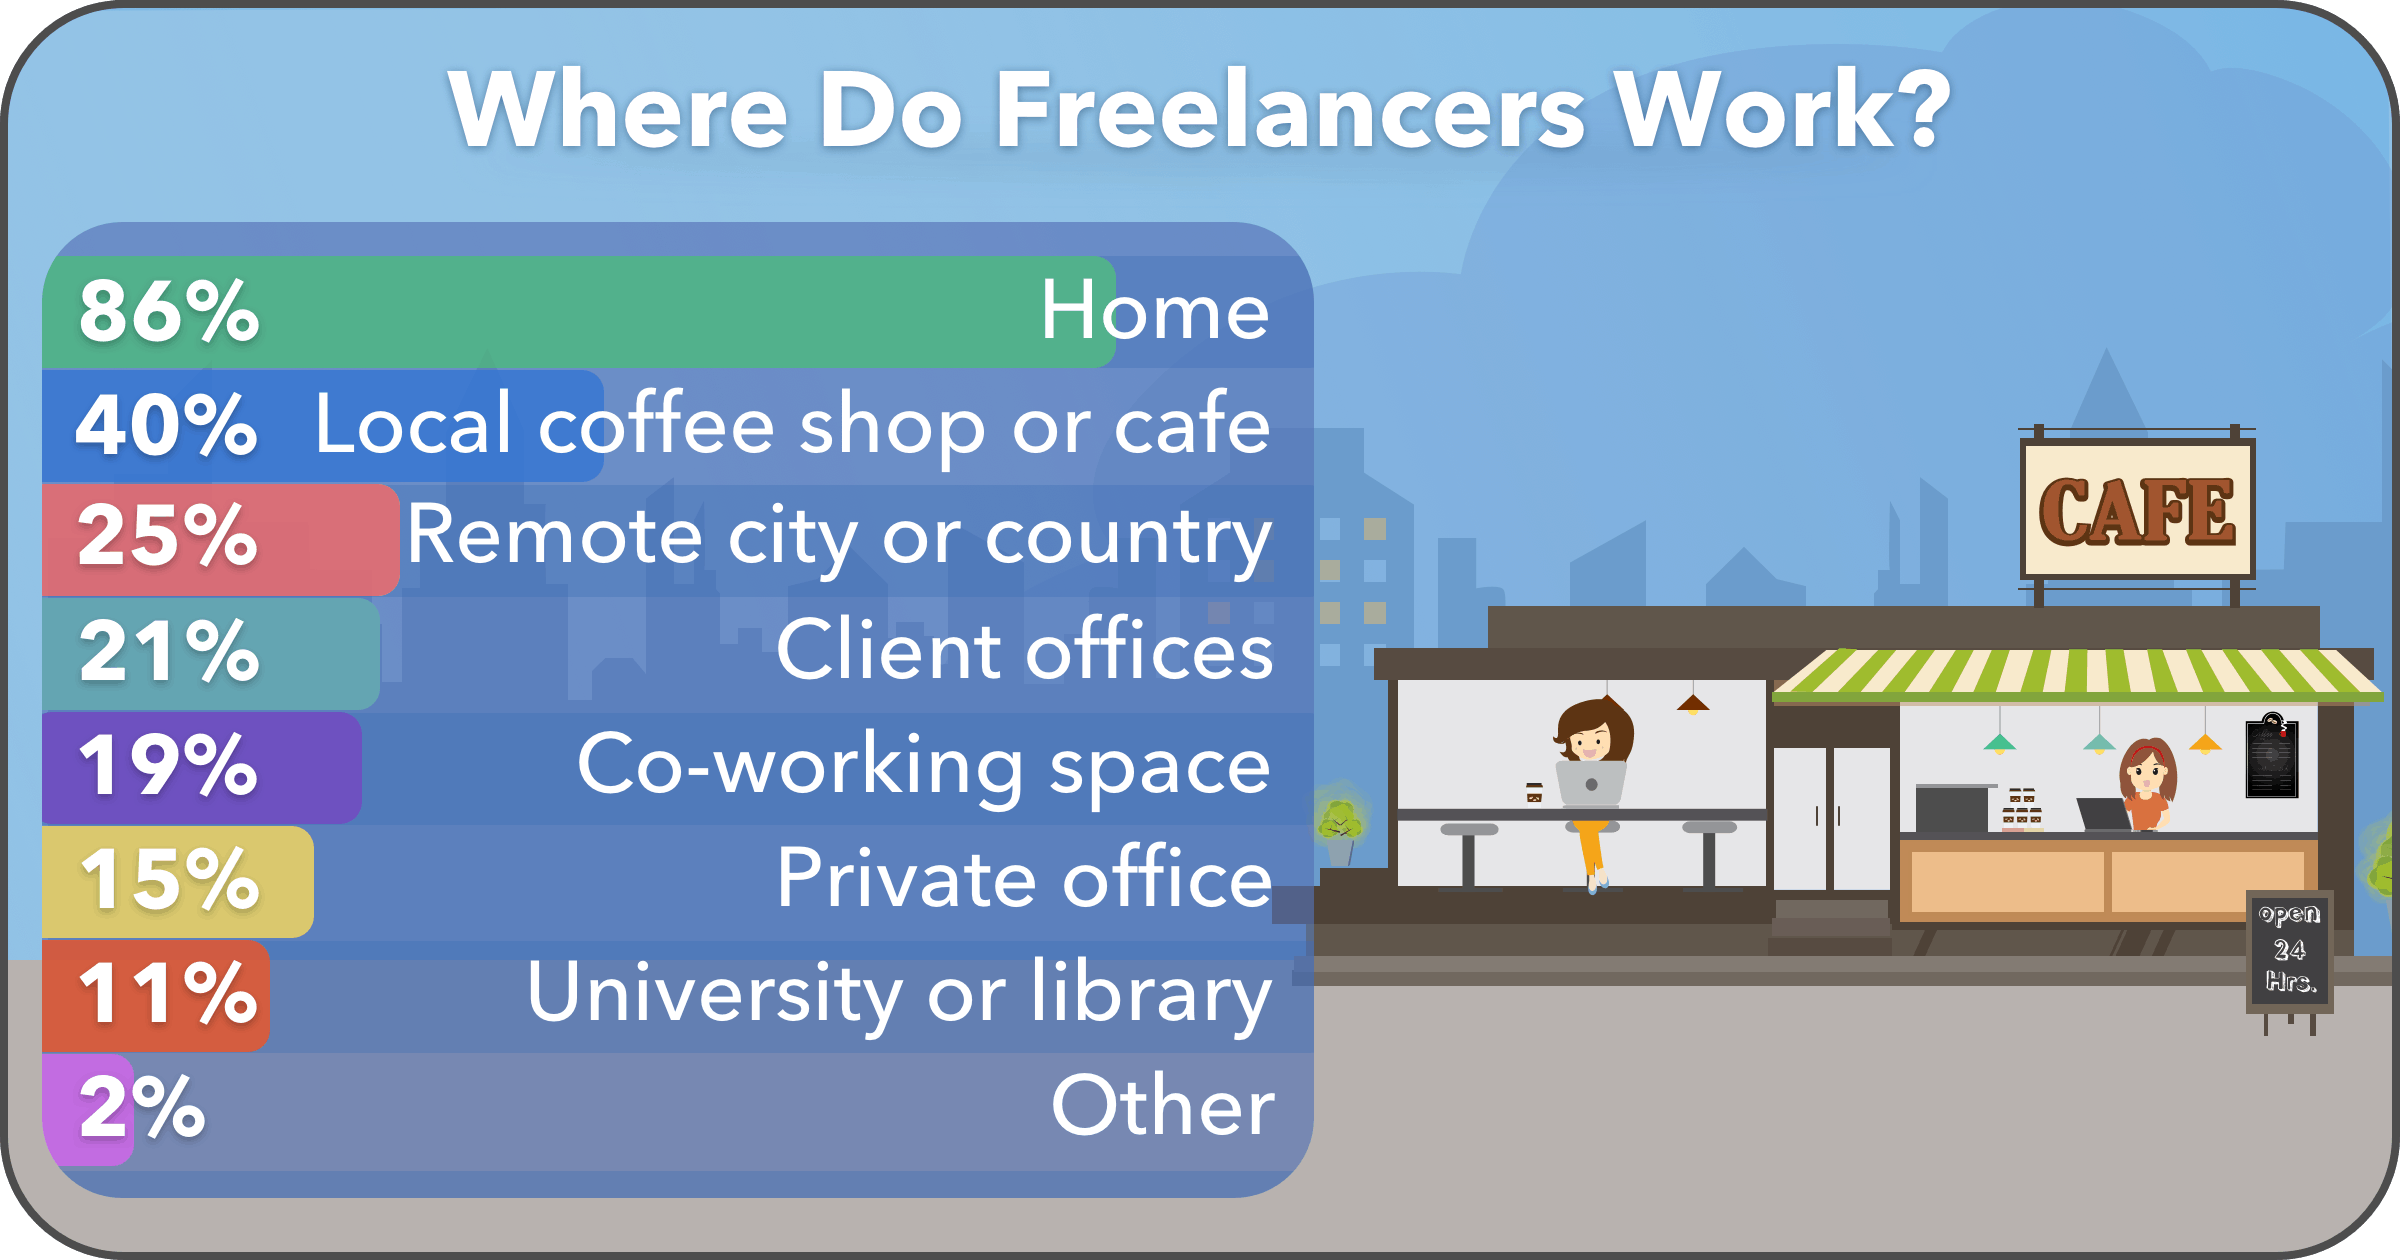 Most Freelancers Work from Home